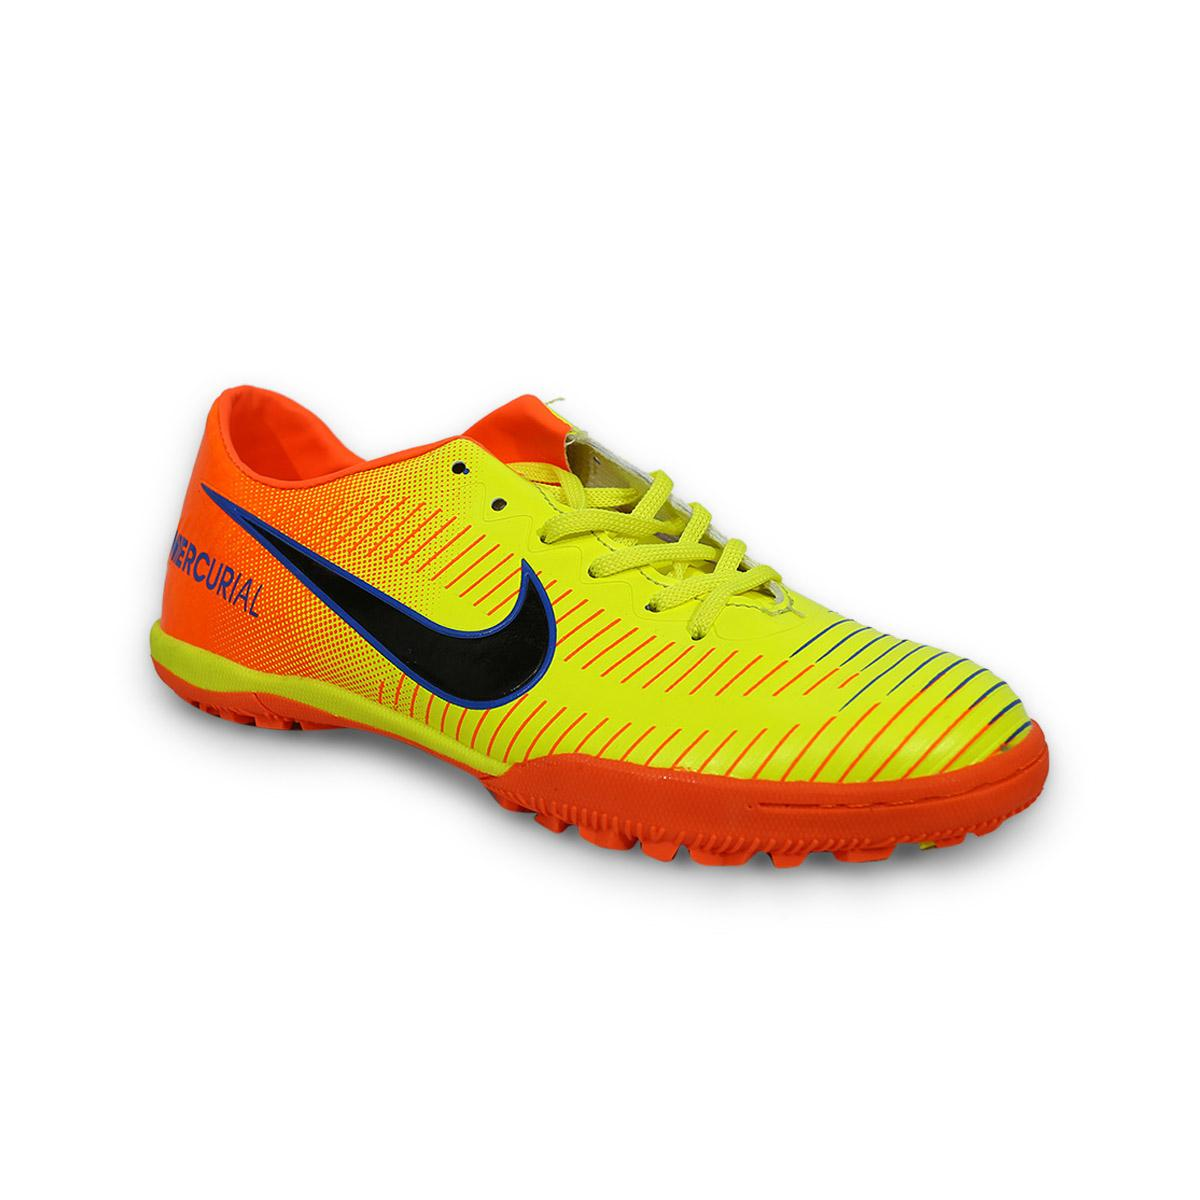 3fa82844c Sports Shoes In Bangladesh At Best Price Online - Daraz.com.bd